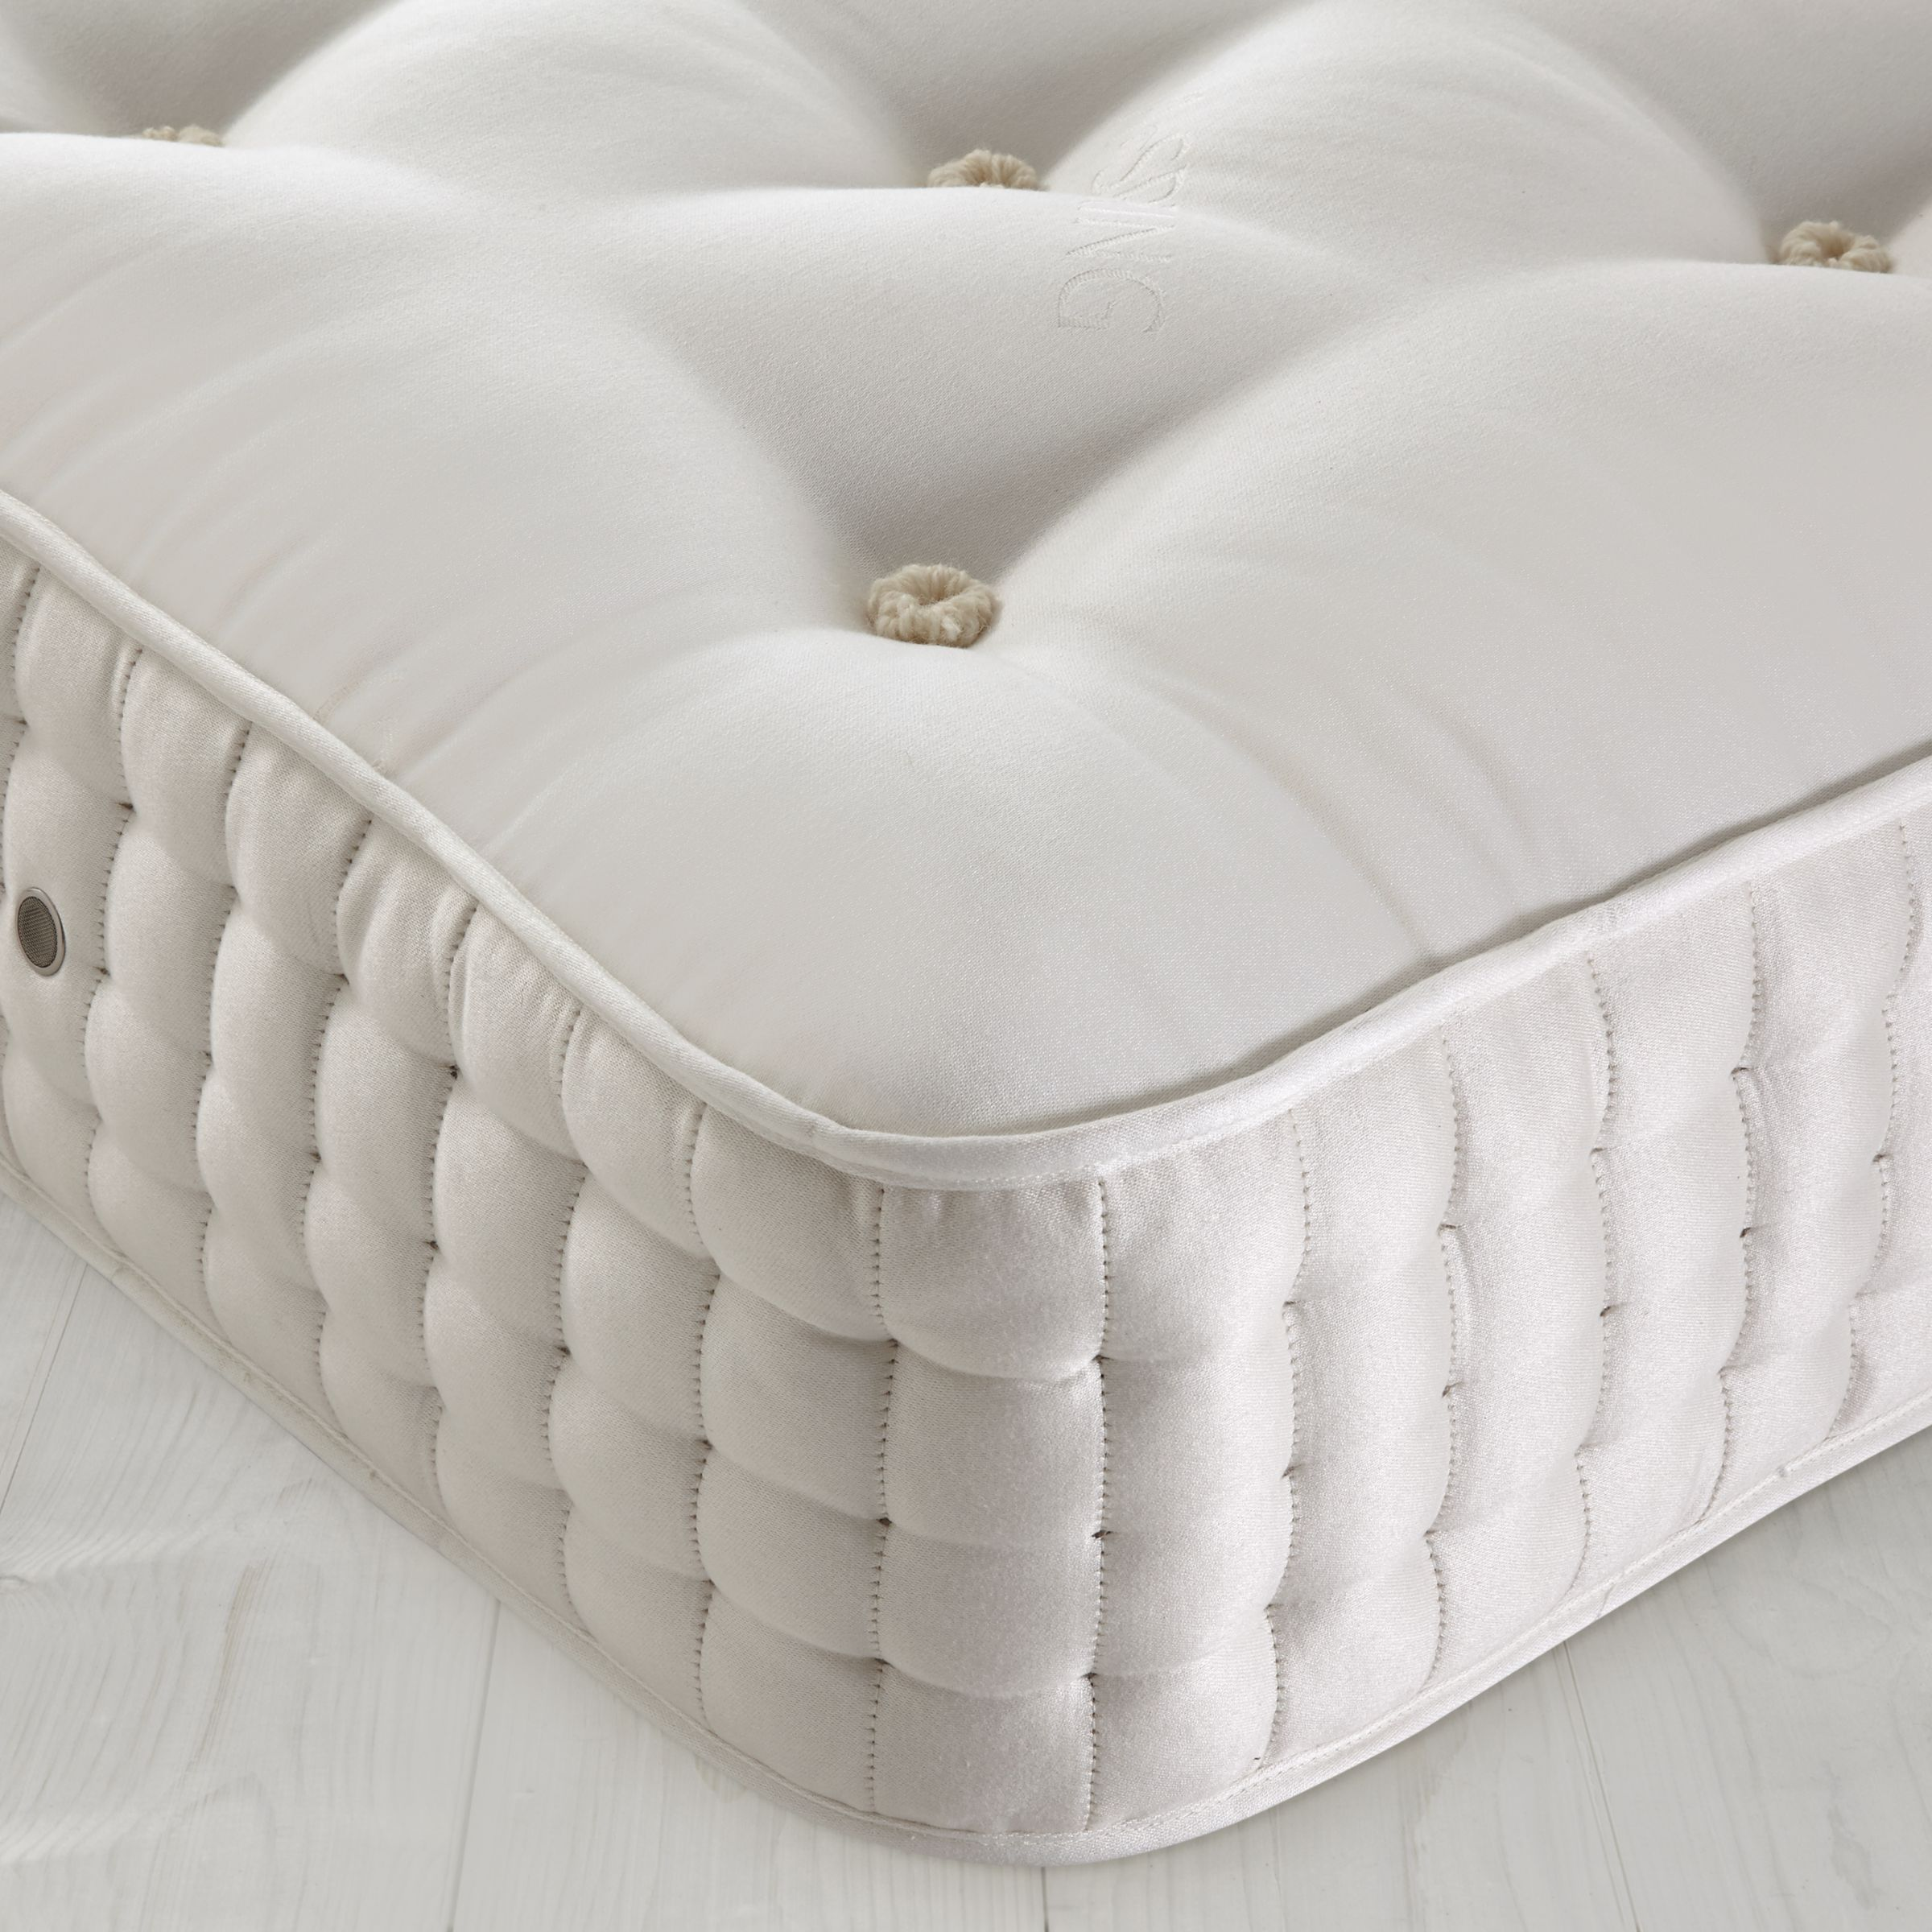 Vi-Spring Stowe Mattress, Double